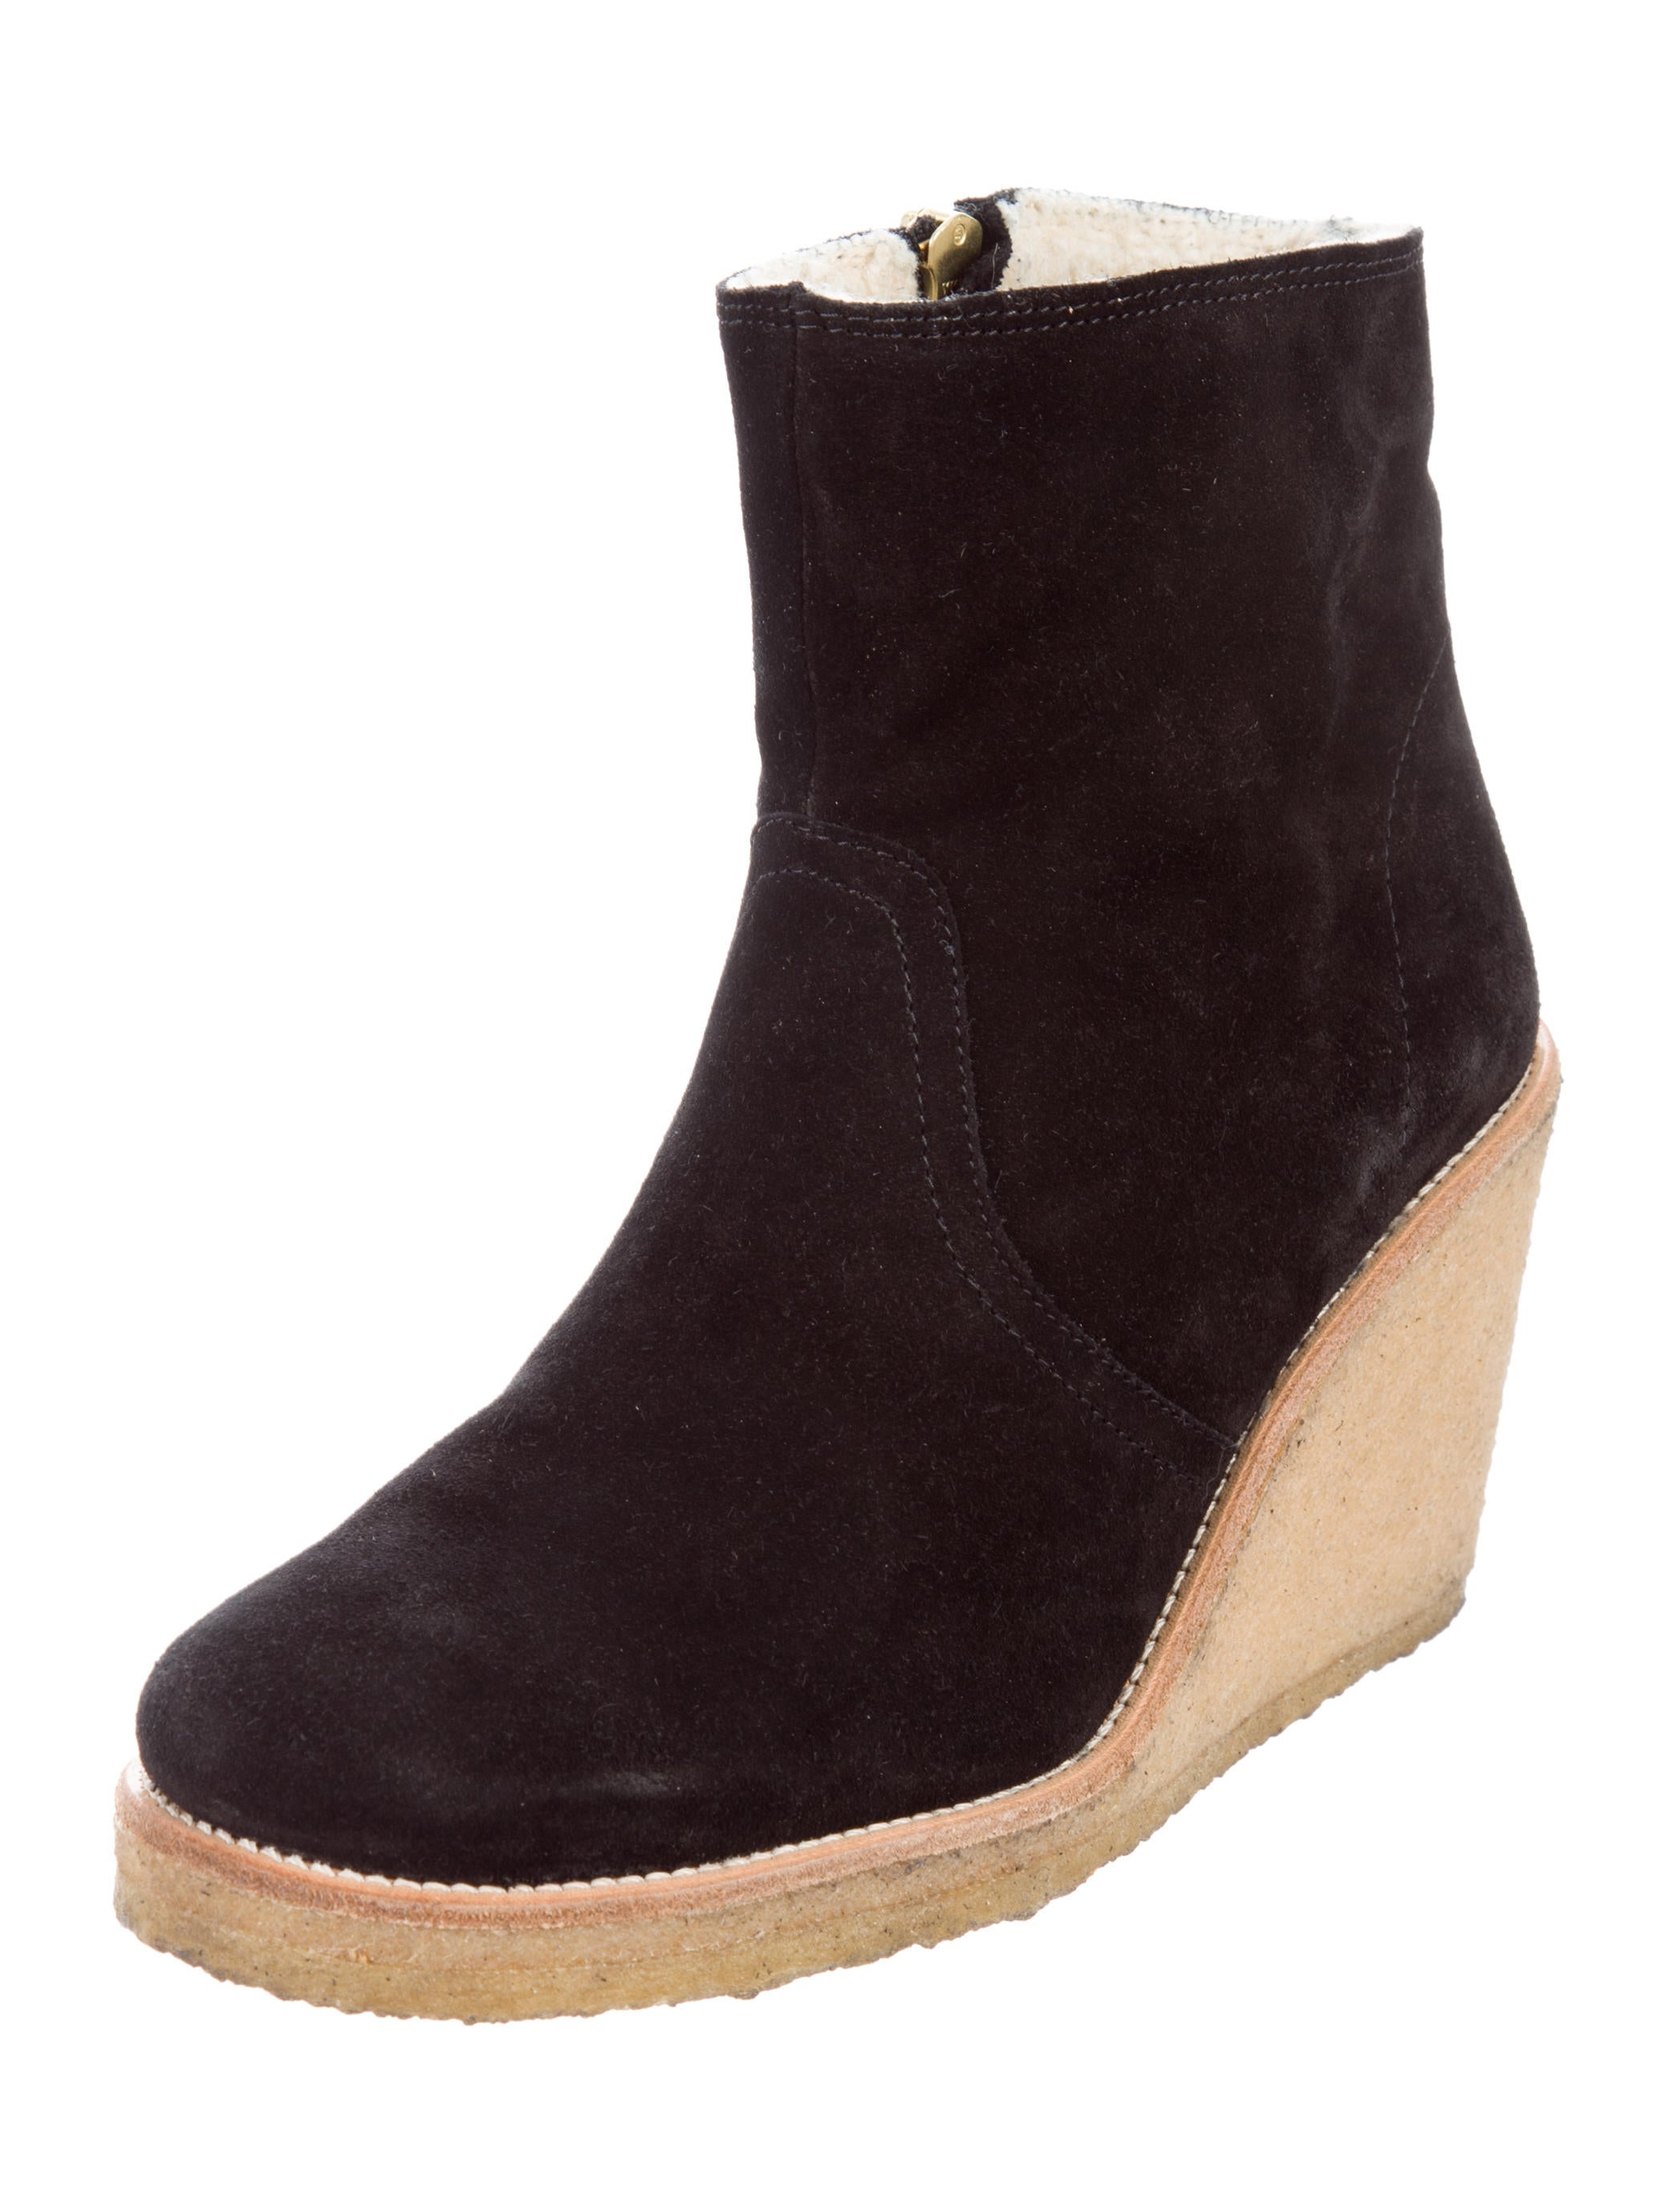 a p c wedge ankle boots shoes wa325955 the realreal